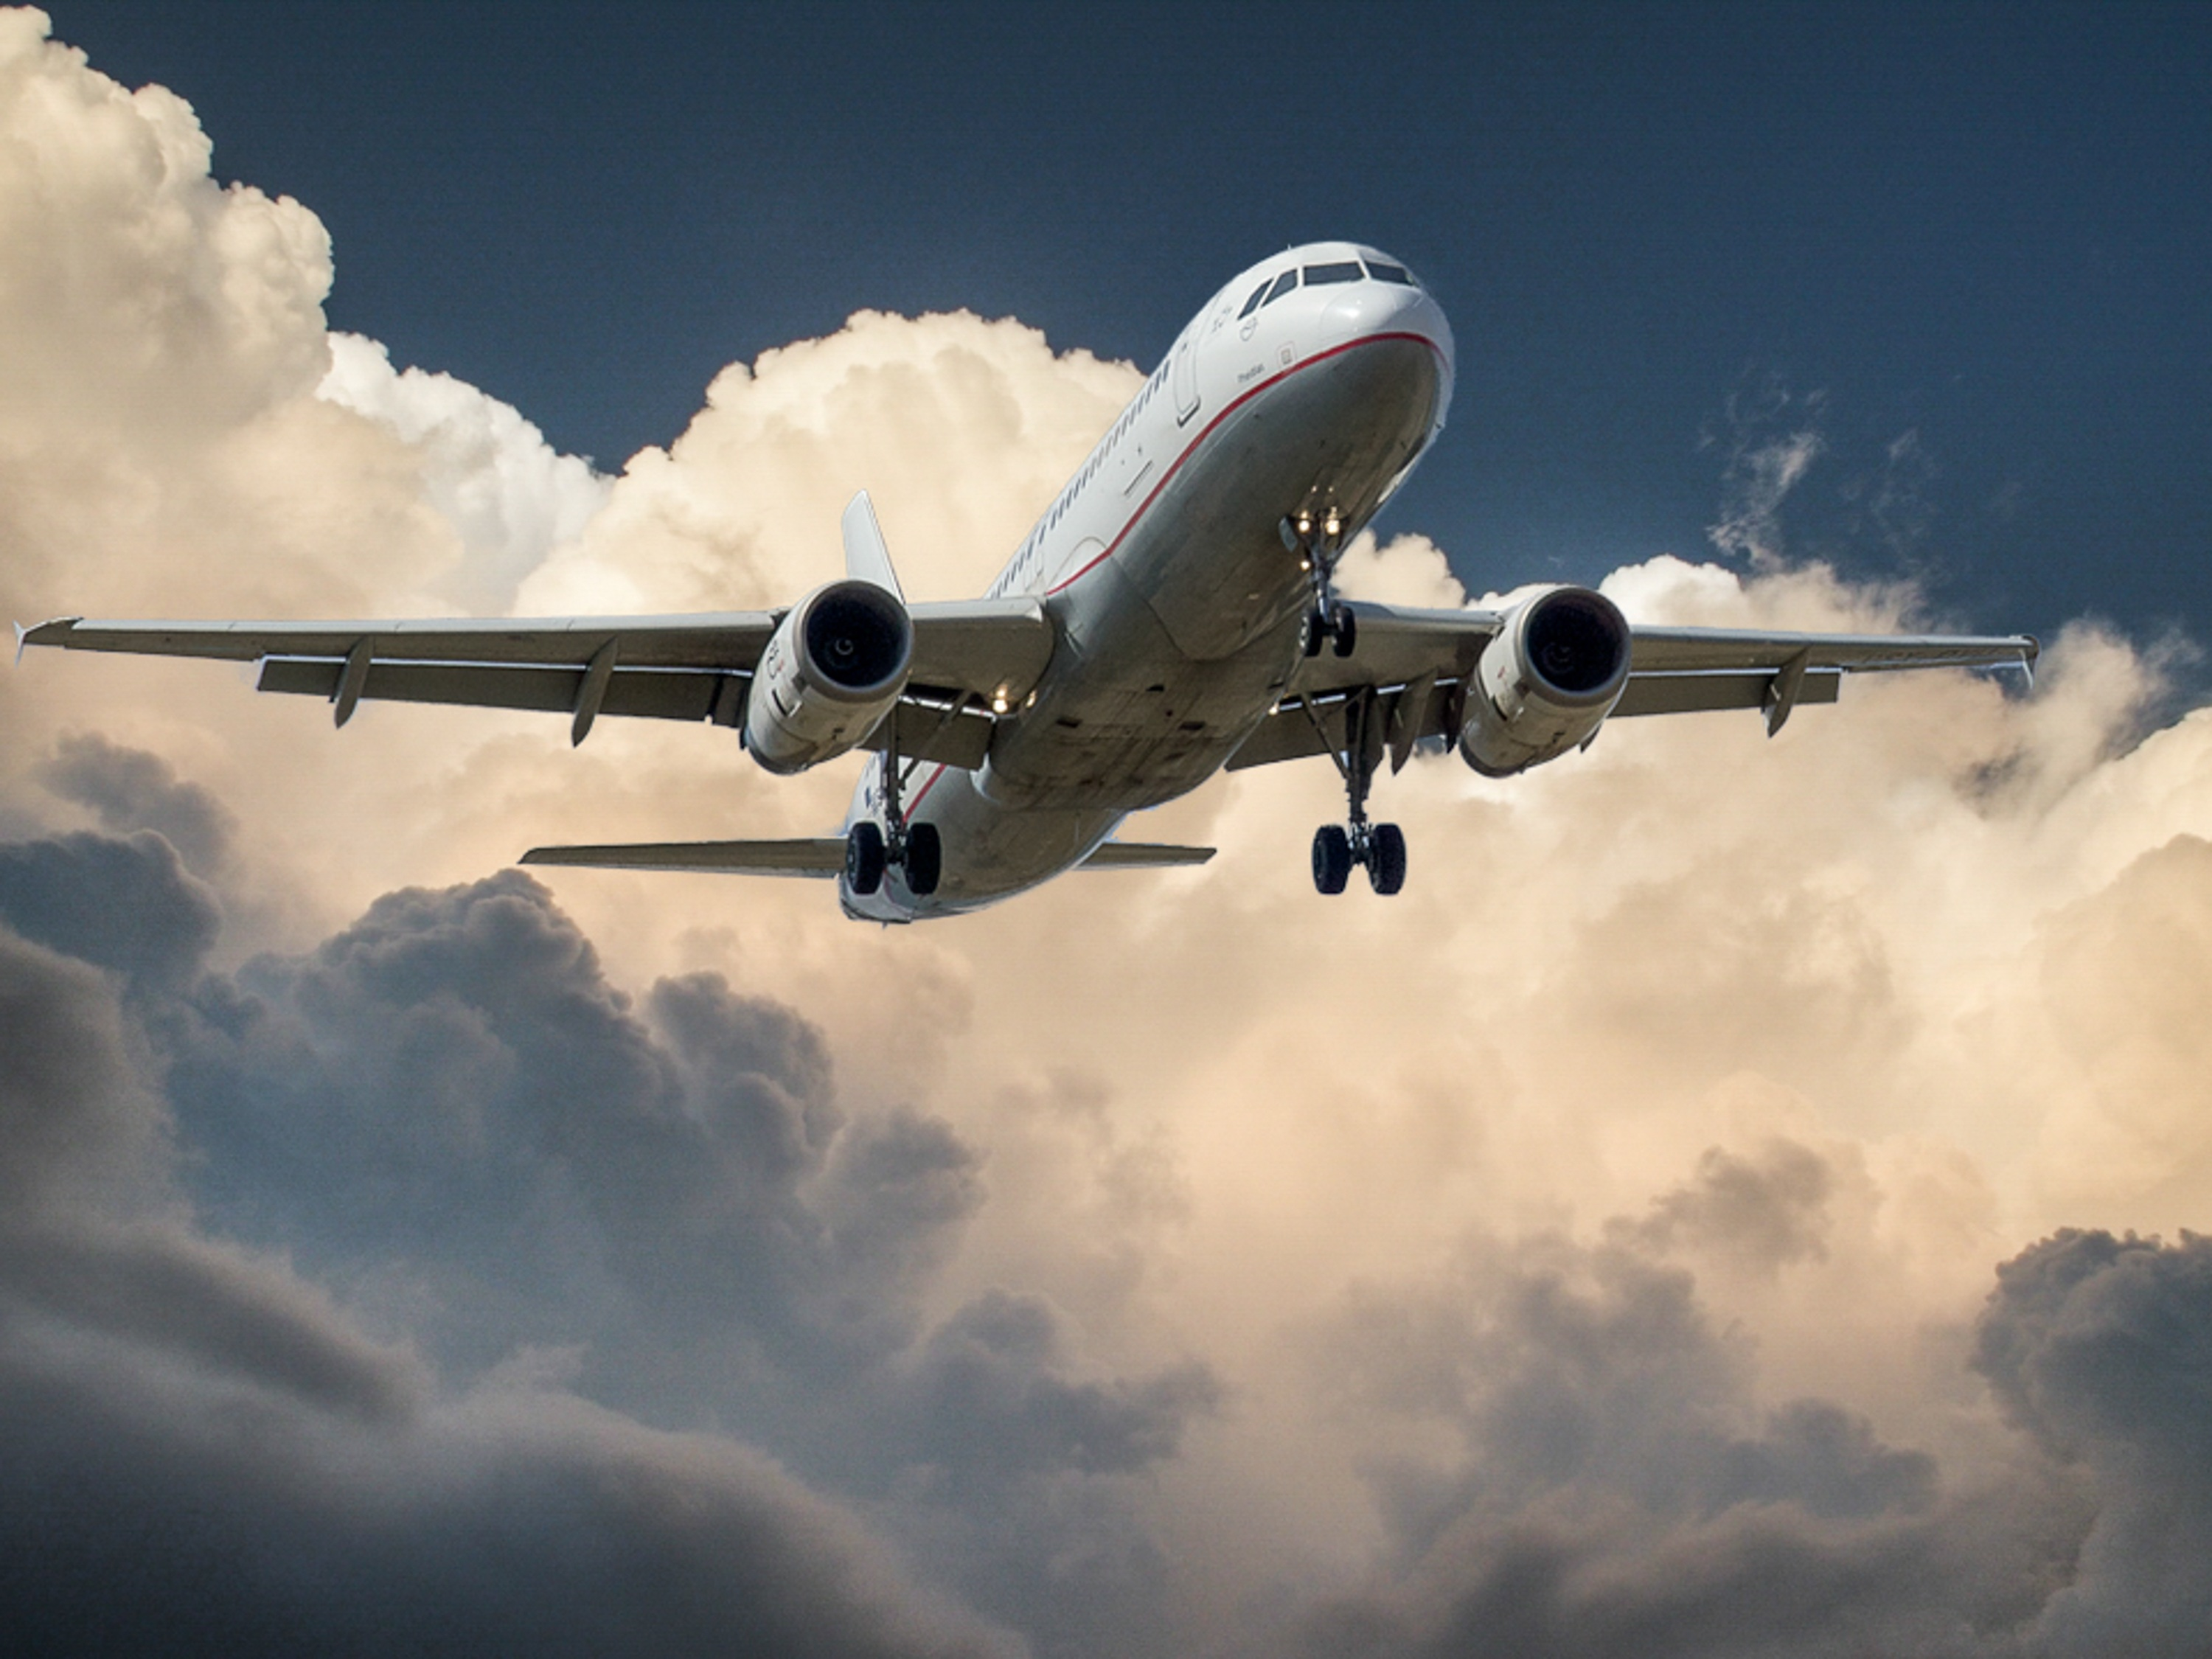 4 Ways to Reduce Stress Before Getting on an Airplane